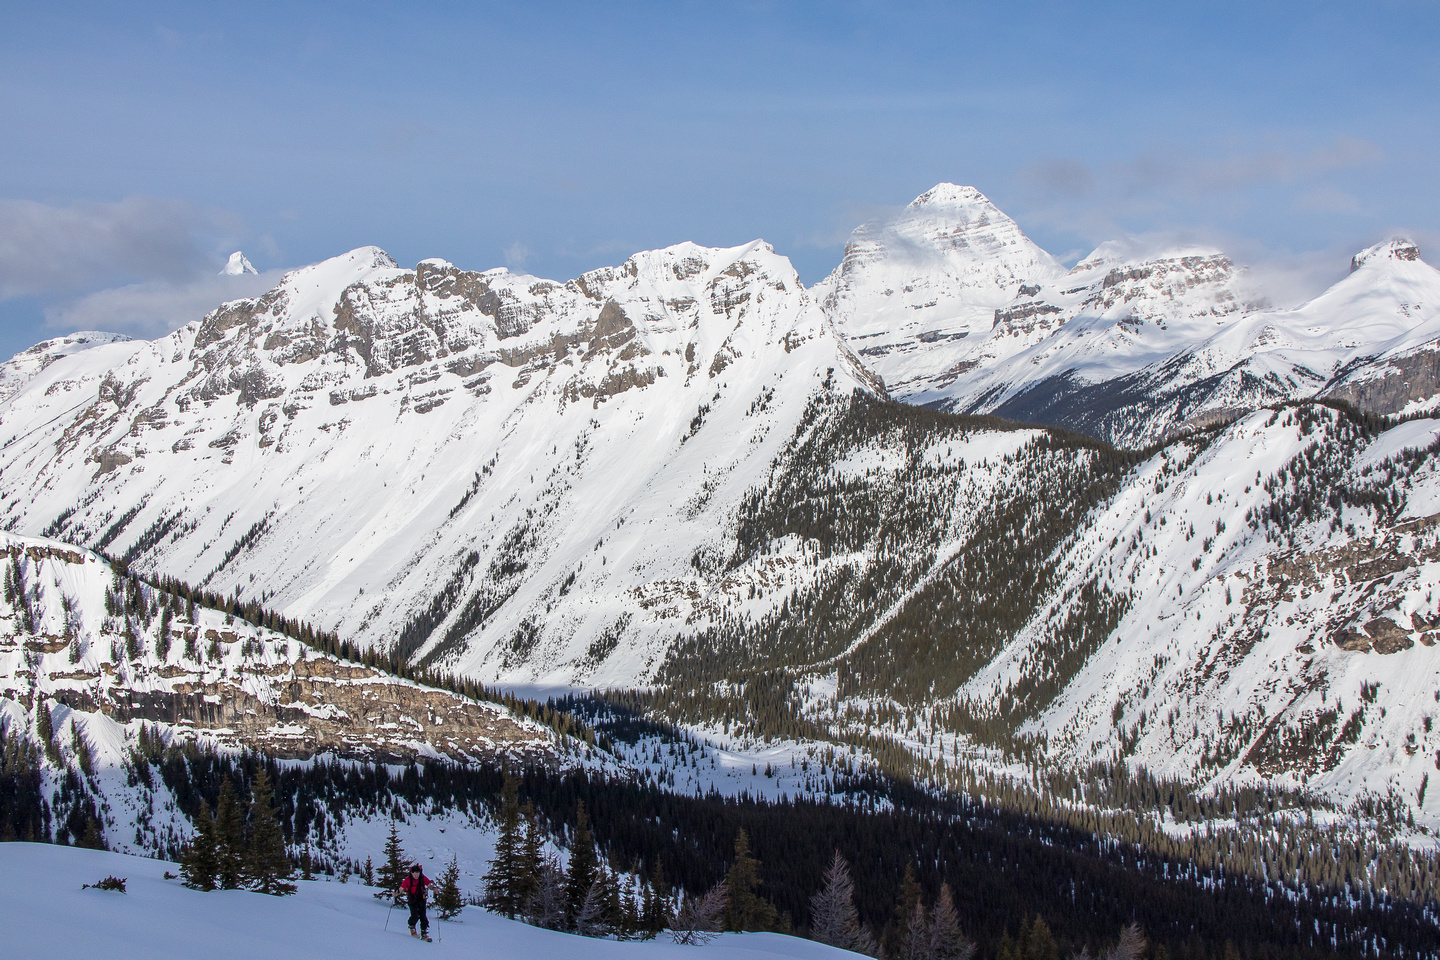 Looking over Marvel Peak towards Eon, Aye, Assiniboine Terrapin and The Towers (L to R).